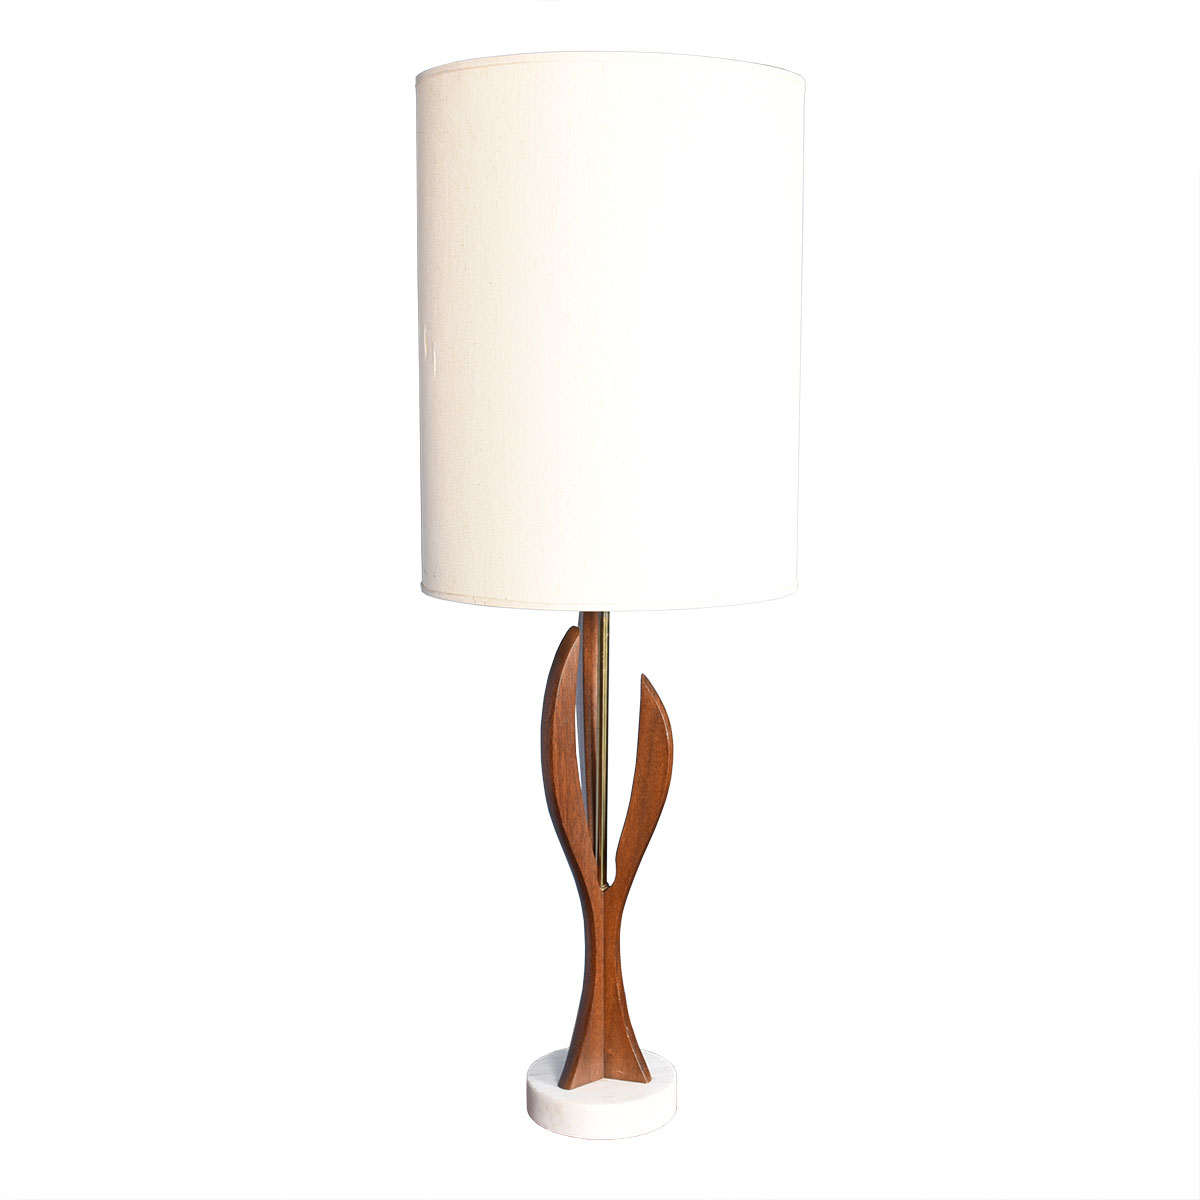 Danish Modern Walnut Sculptural Table Lamp w/ Marble Base